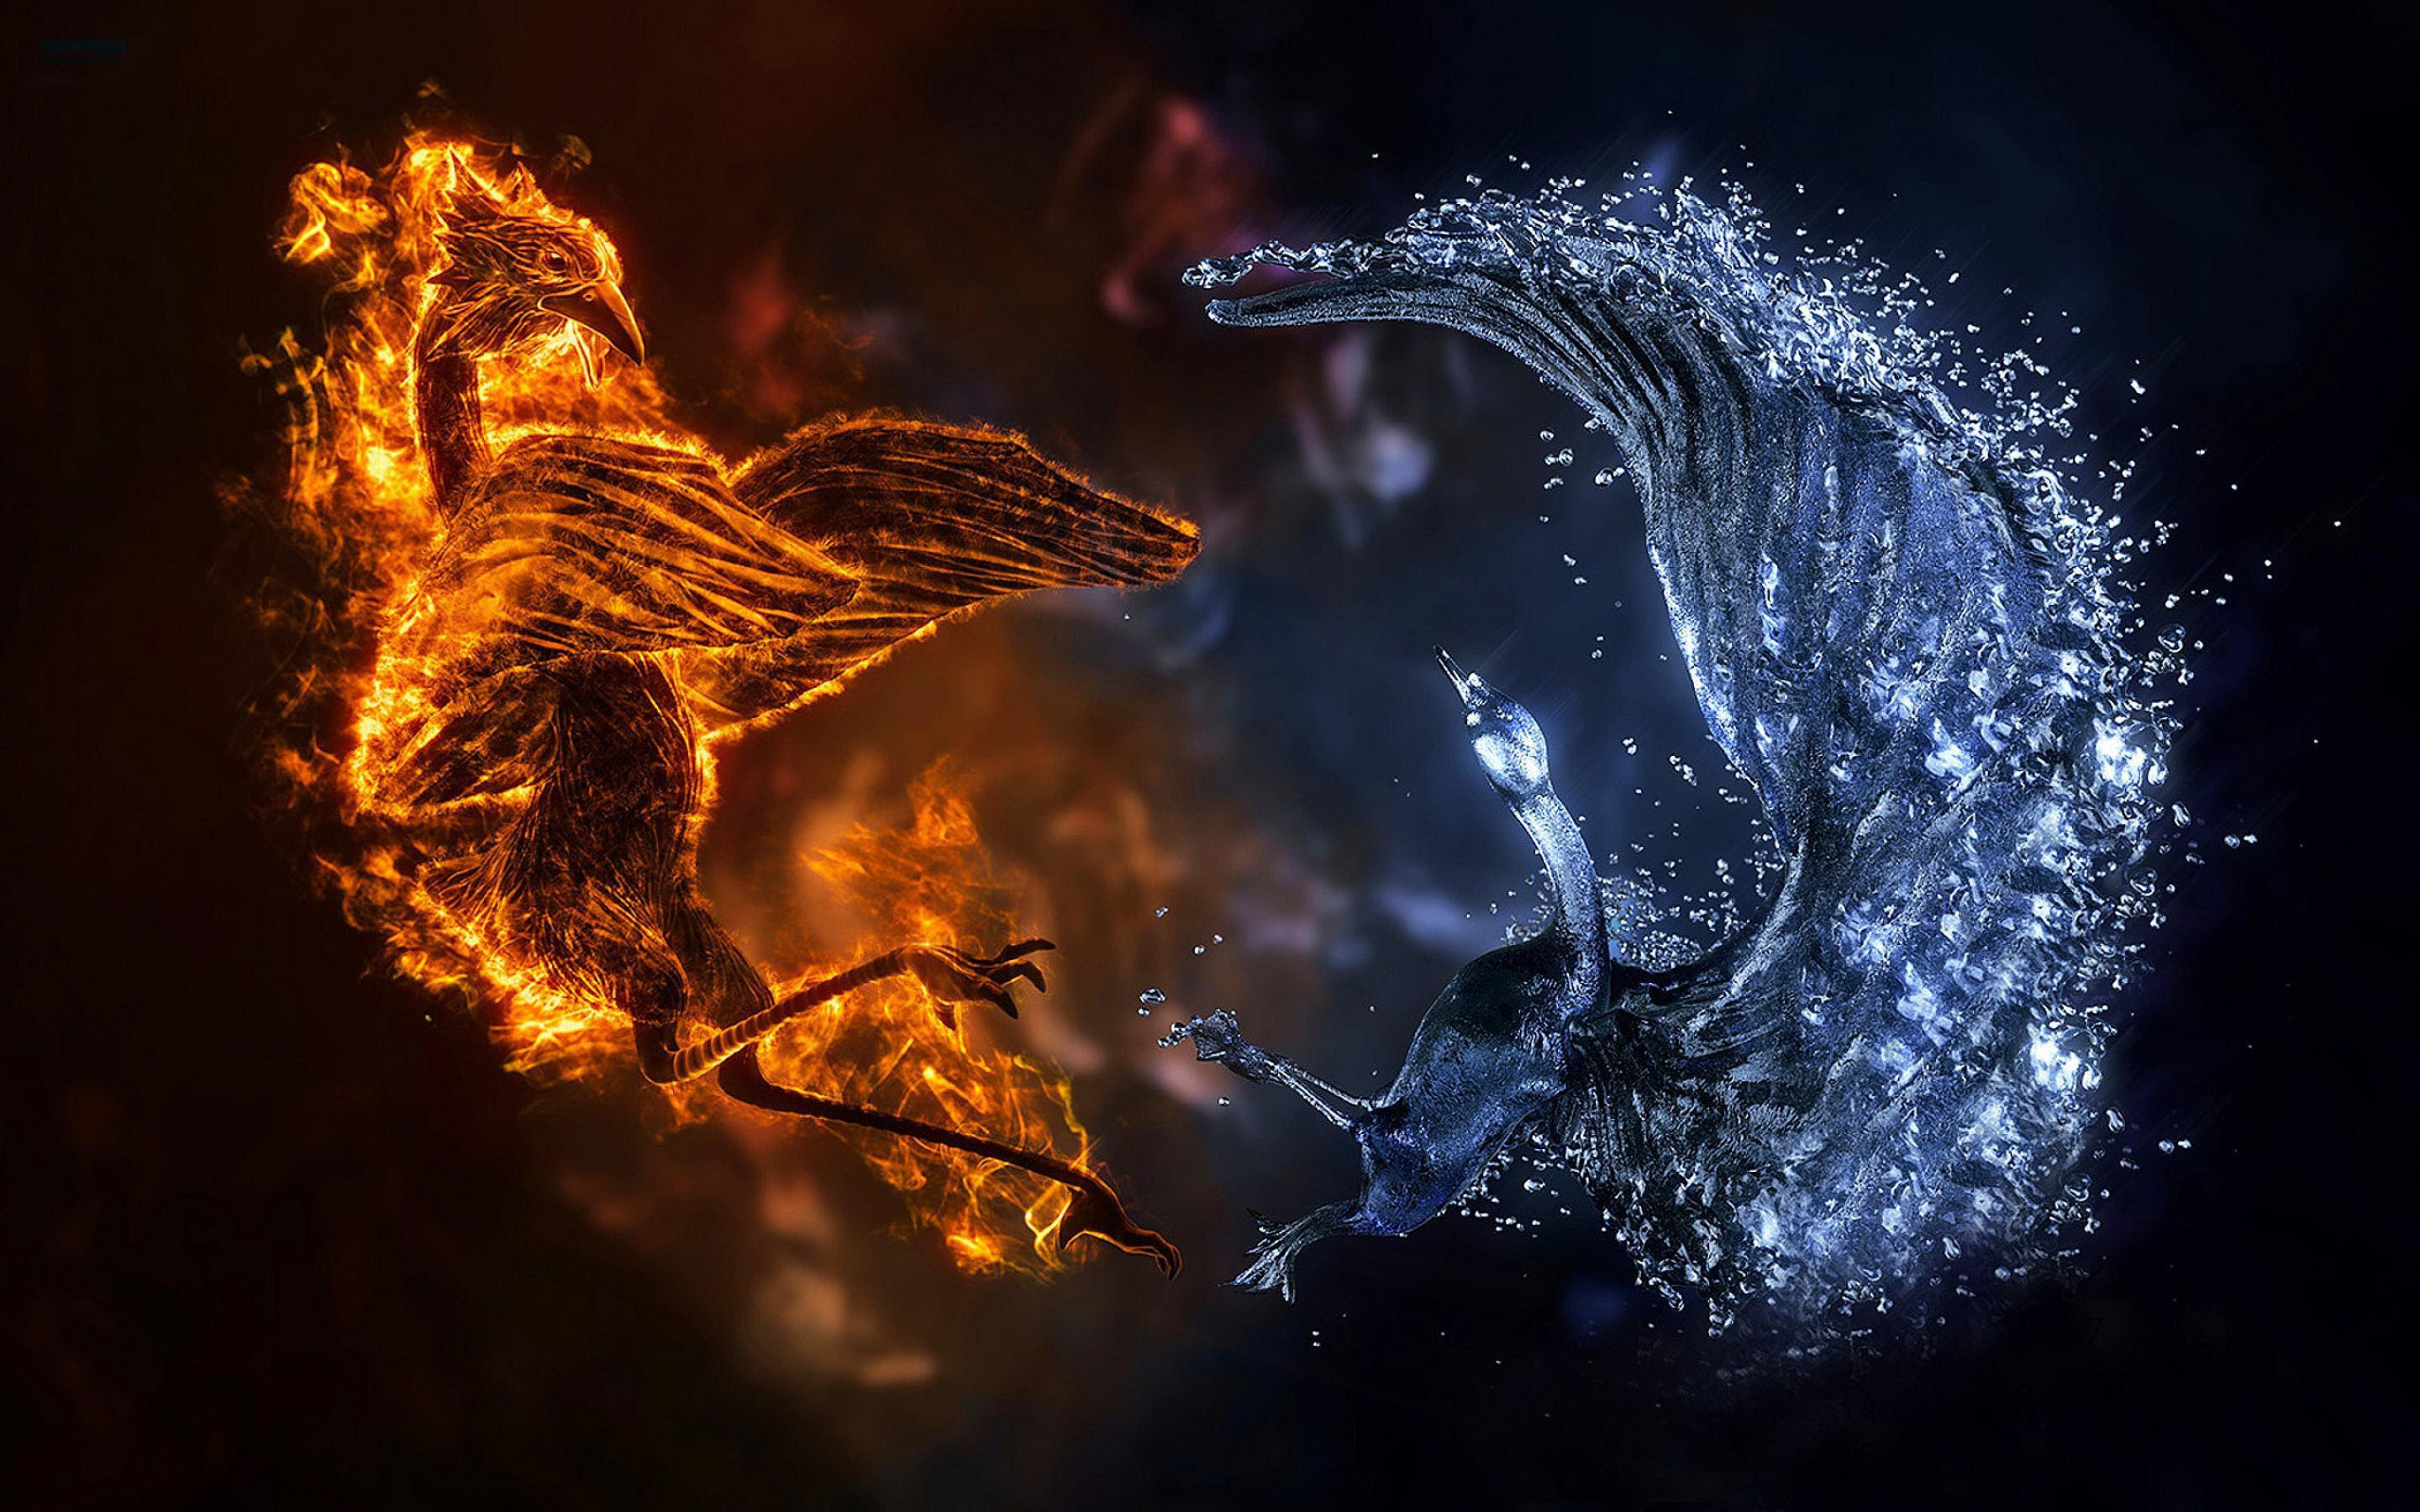 Hd Fire And Ice Birds Wallpaper Download Free 139940